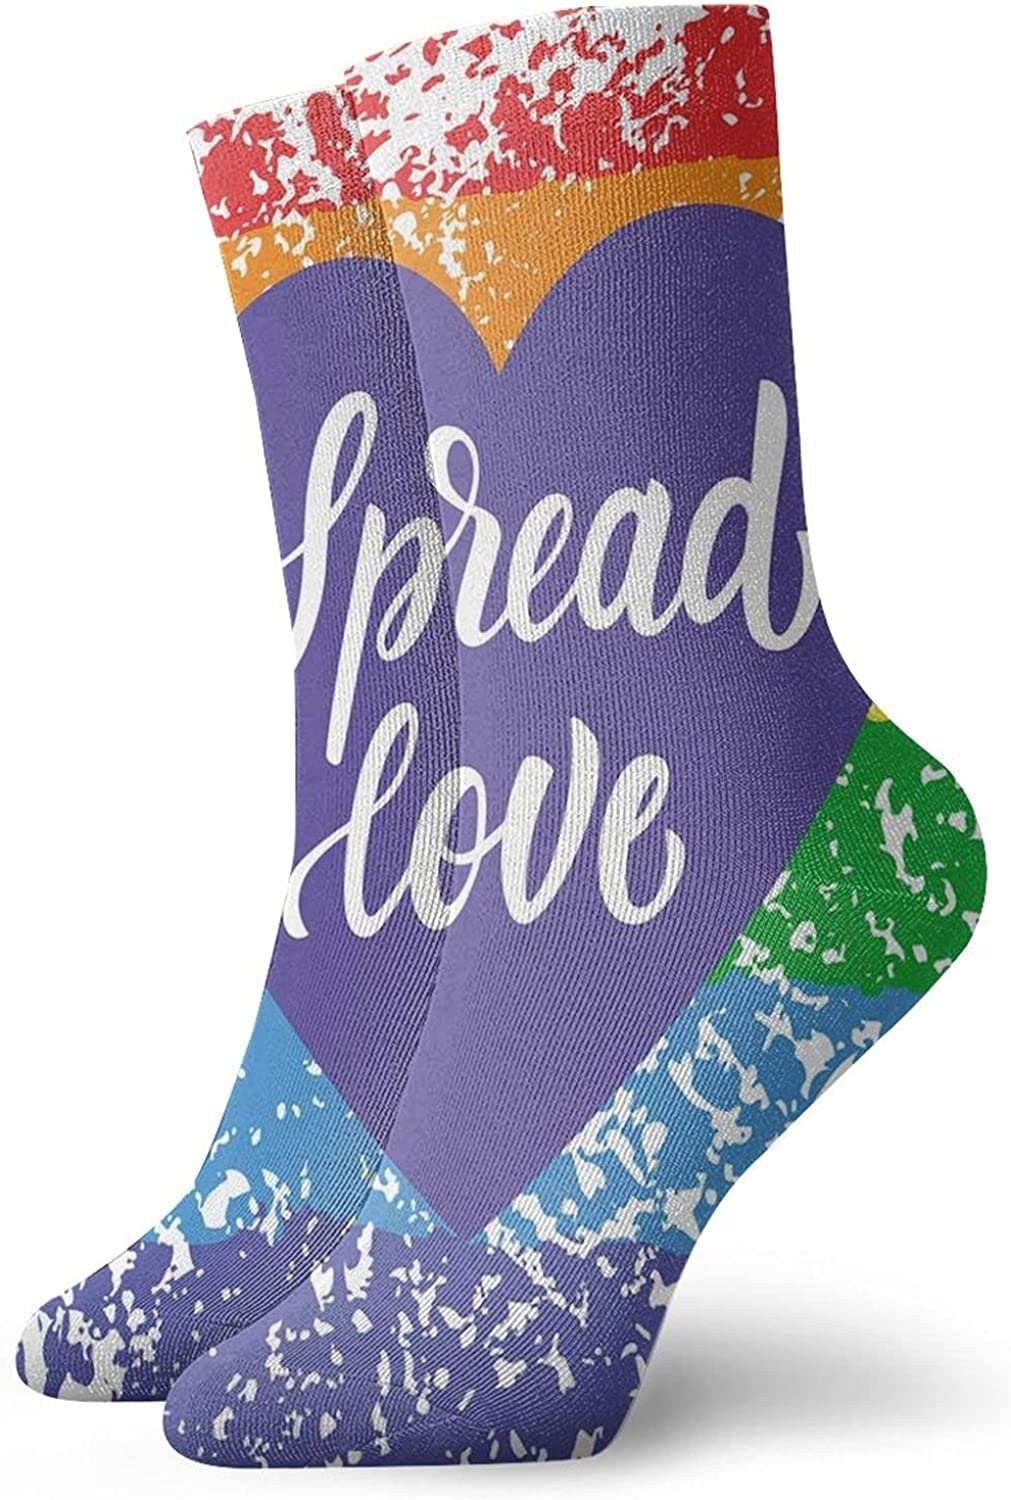 Compression High Socks-Spread Love Valentines Hand Writing Heart Lgbt Parade Slogan Grungy Vibrant Best for Running,Athletic,Hiking,Travel,Flight